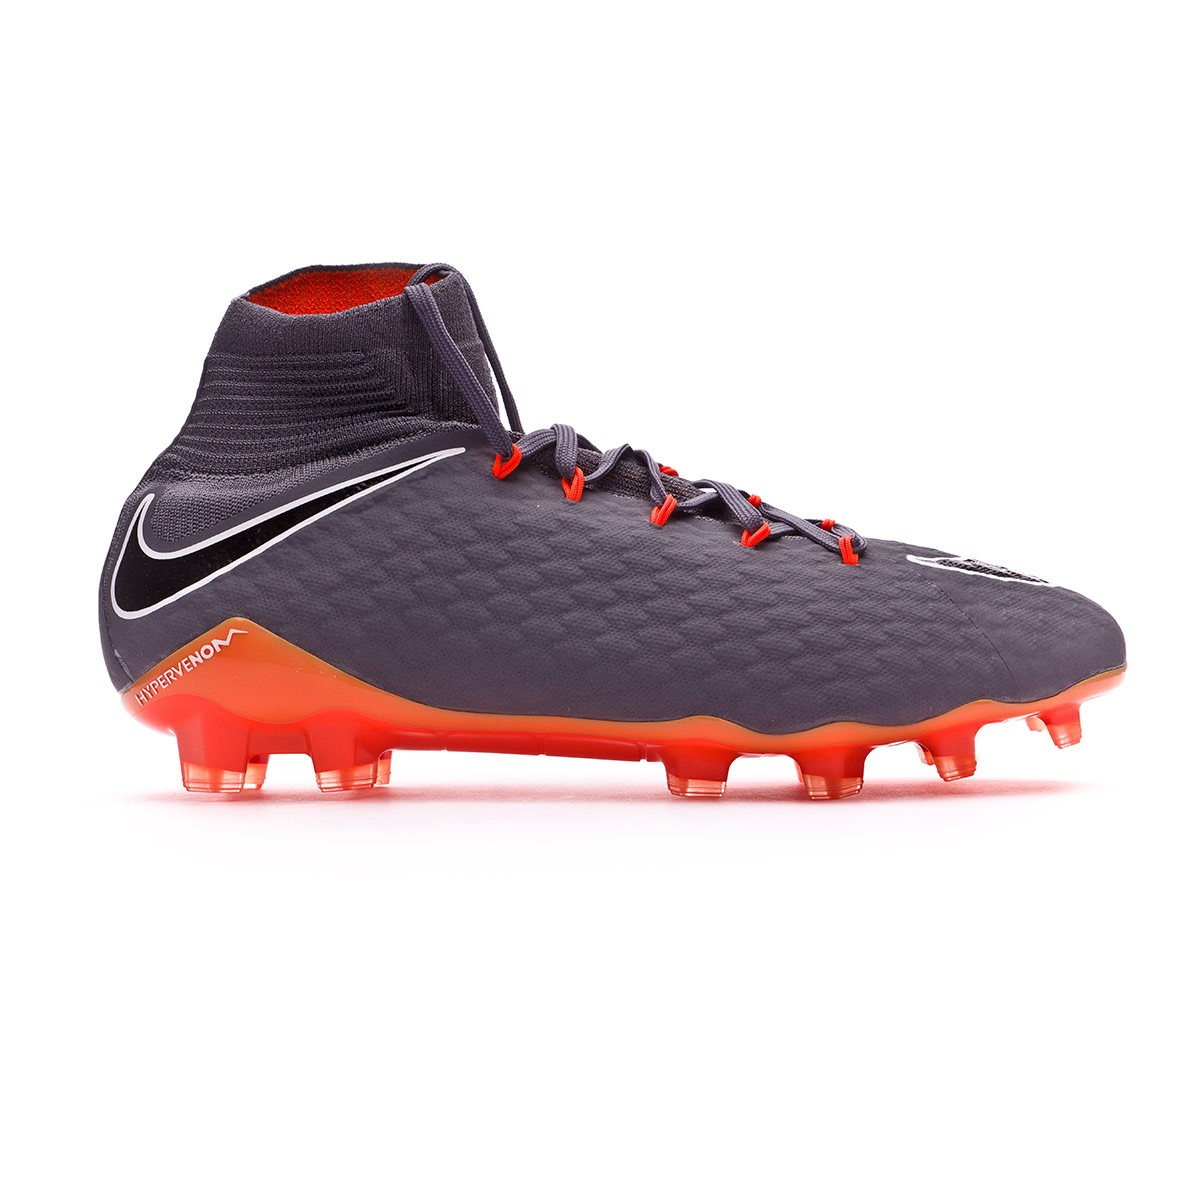 89f012a8b Football Boots Nike Hypervenom Phantom III Pro DF FG Dark grey-Total  orange-White - Football store Fútbol Emotion